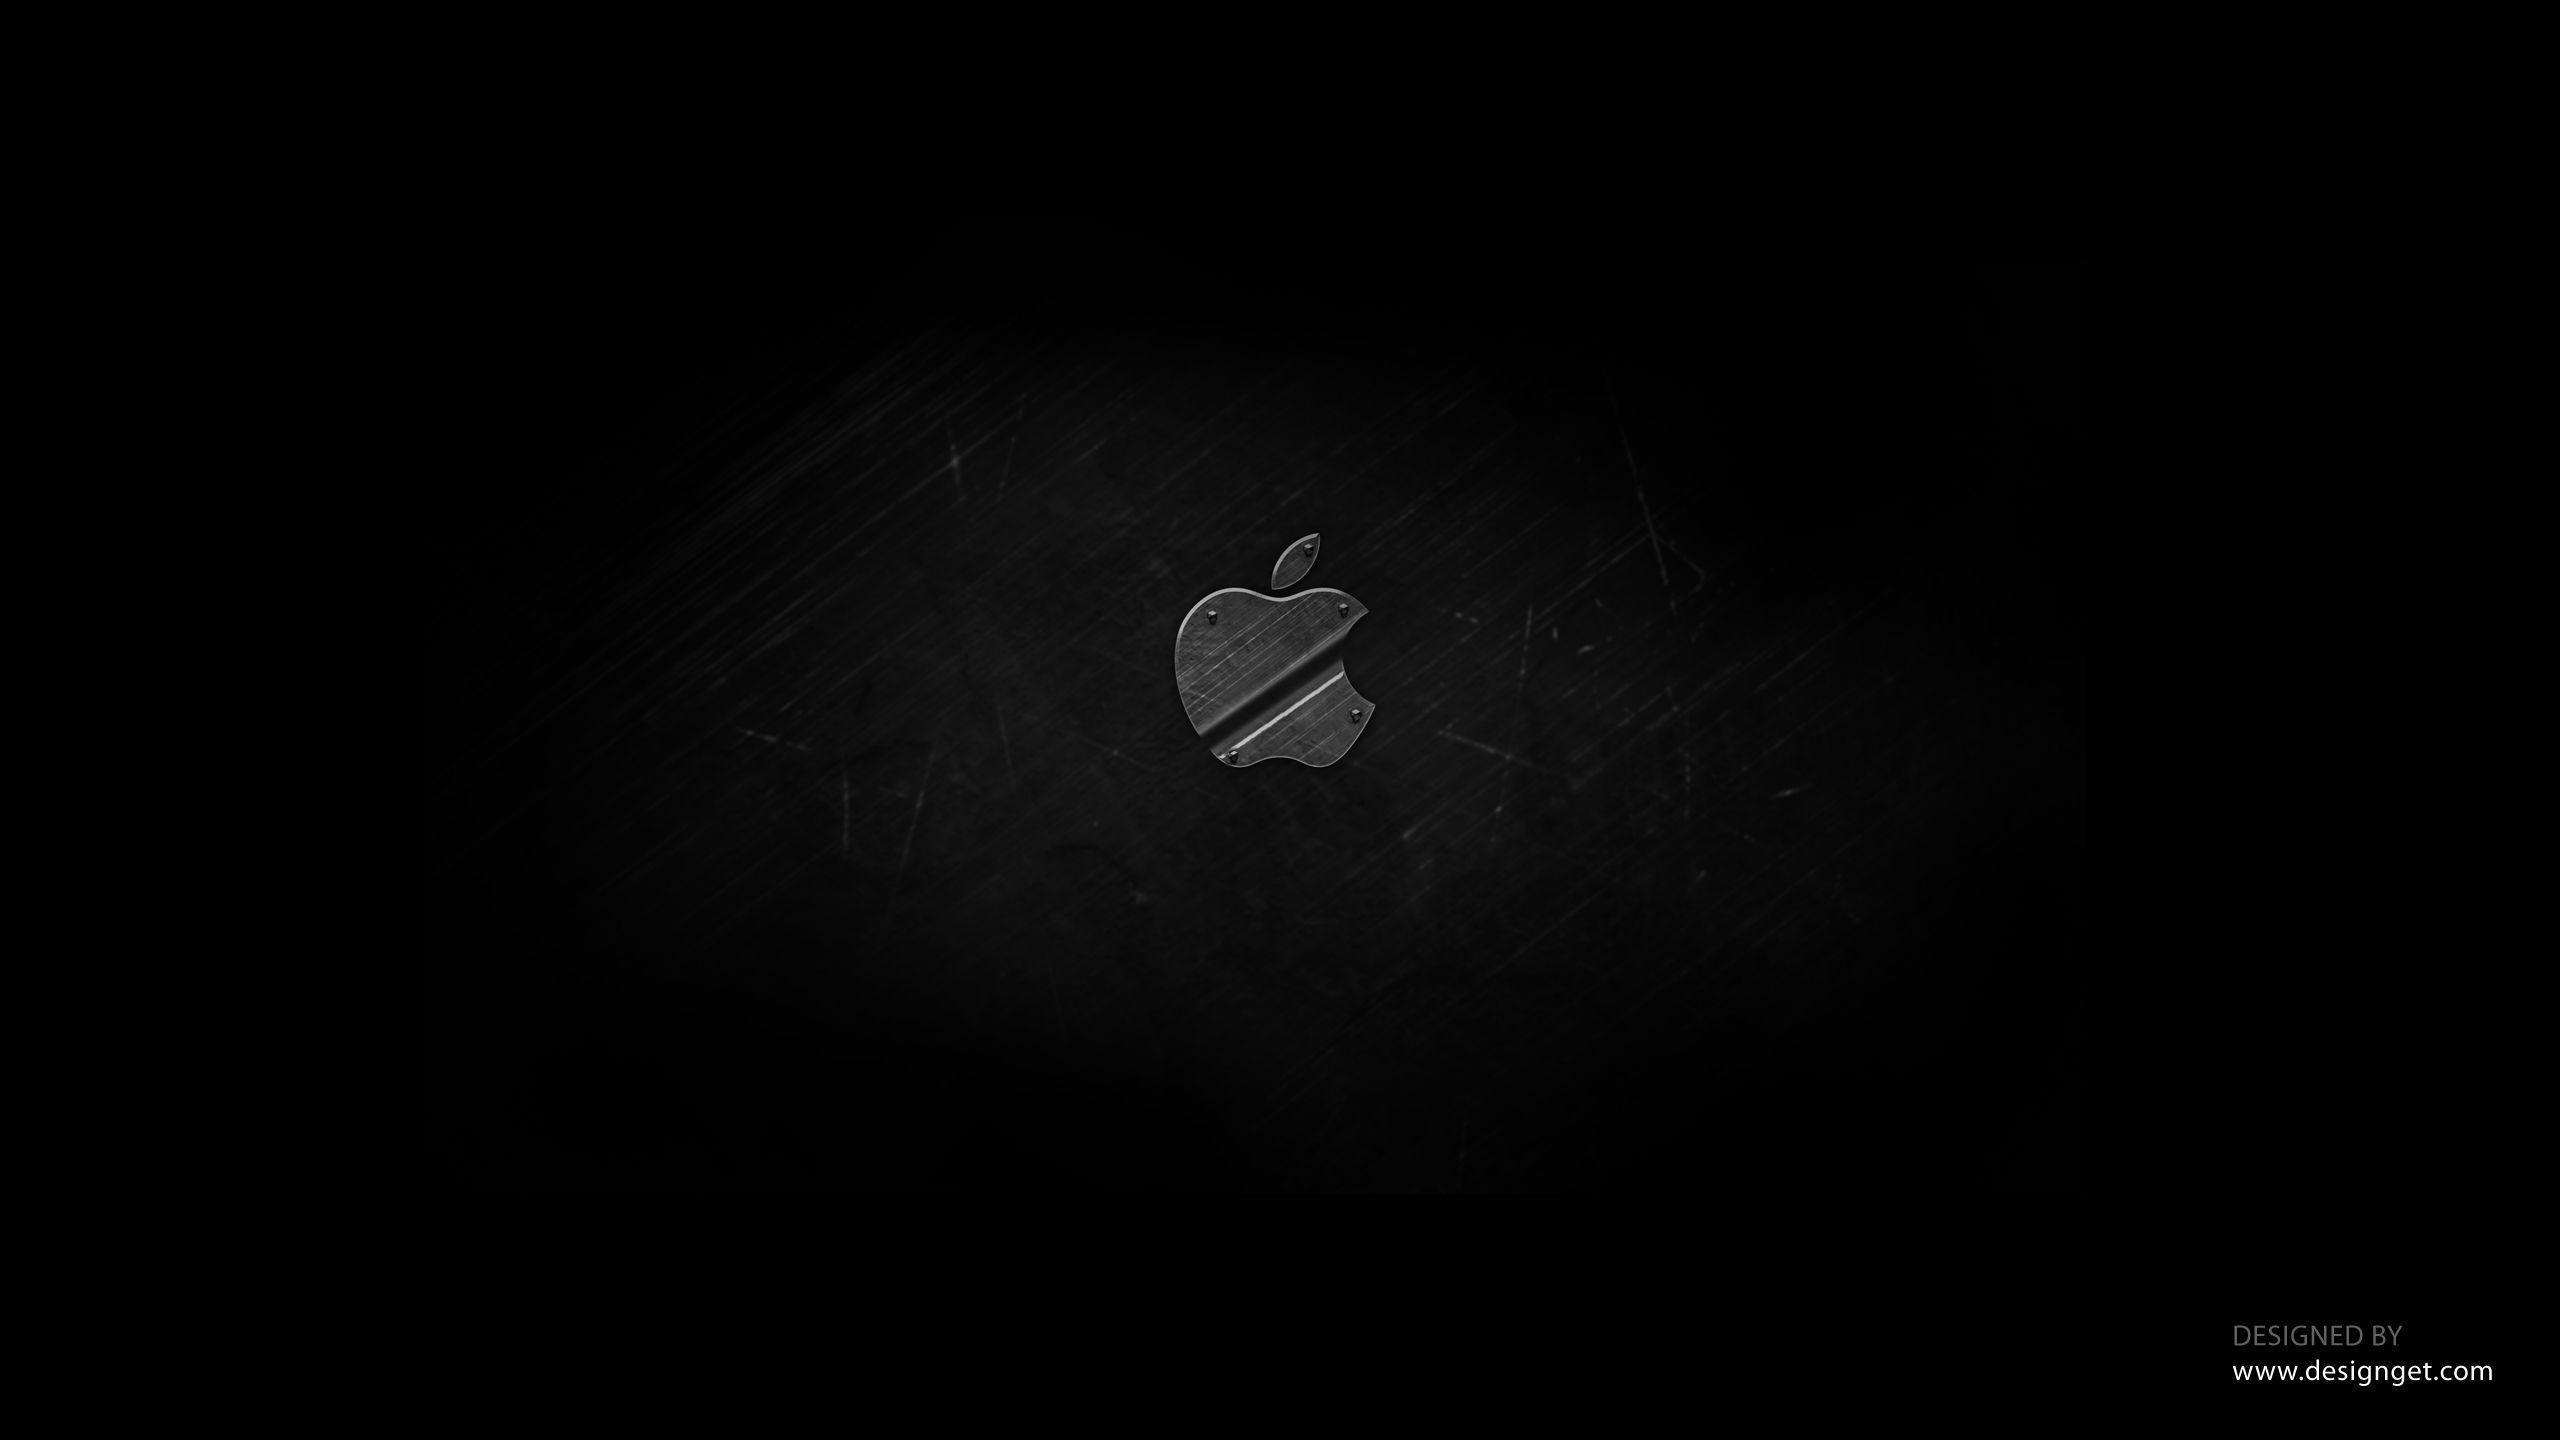 imac 27 wallpapers 10